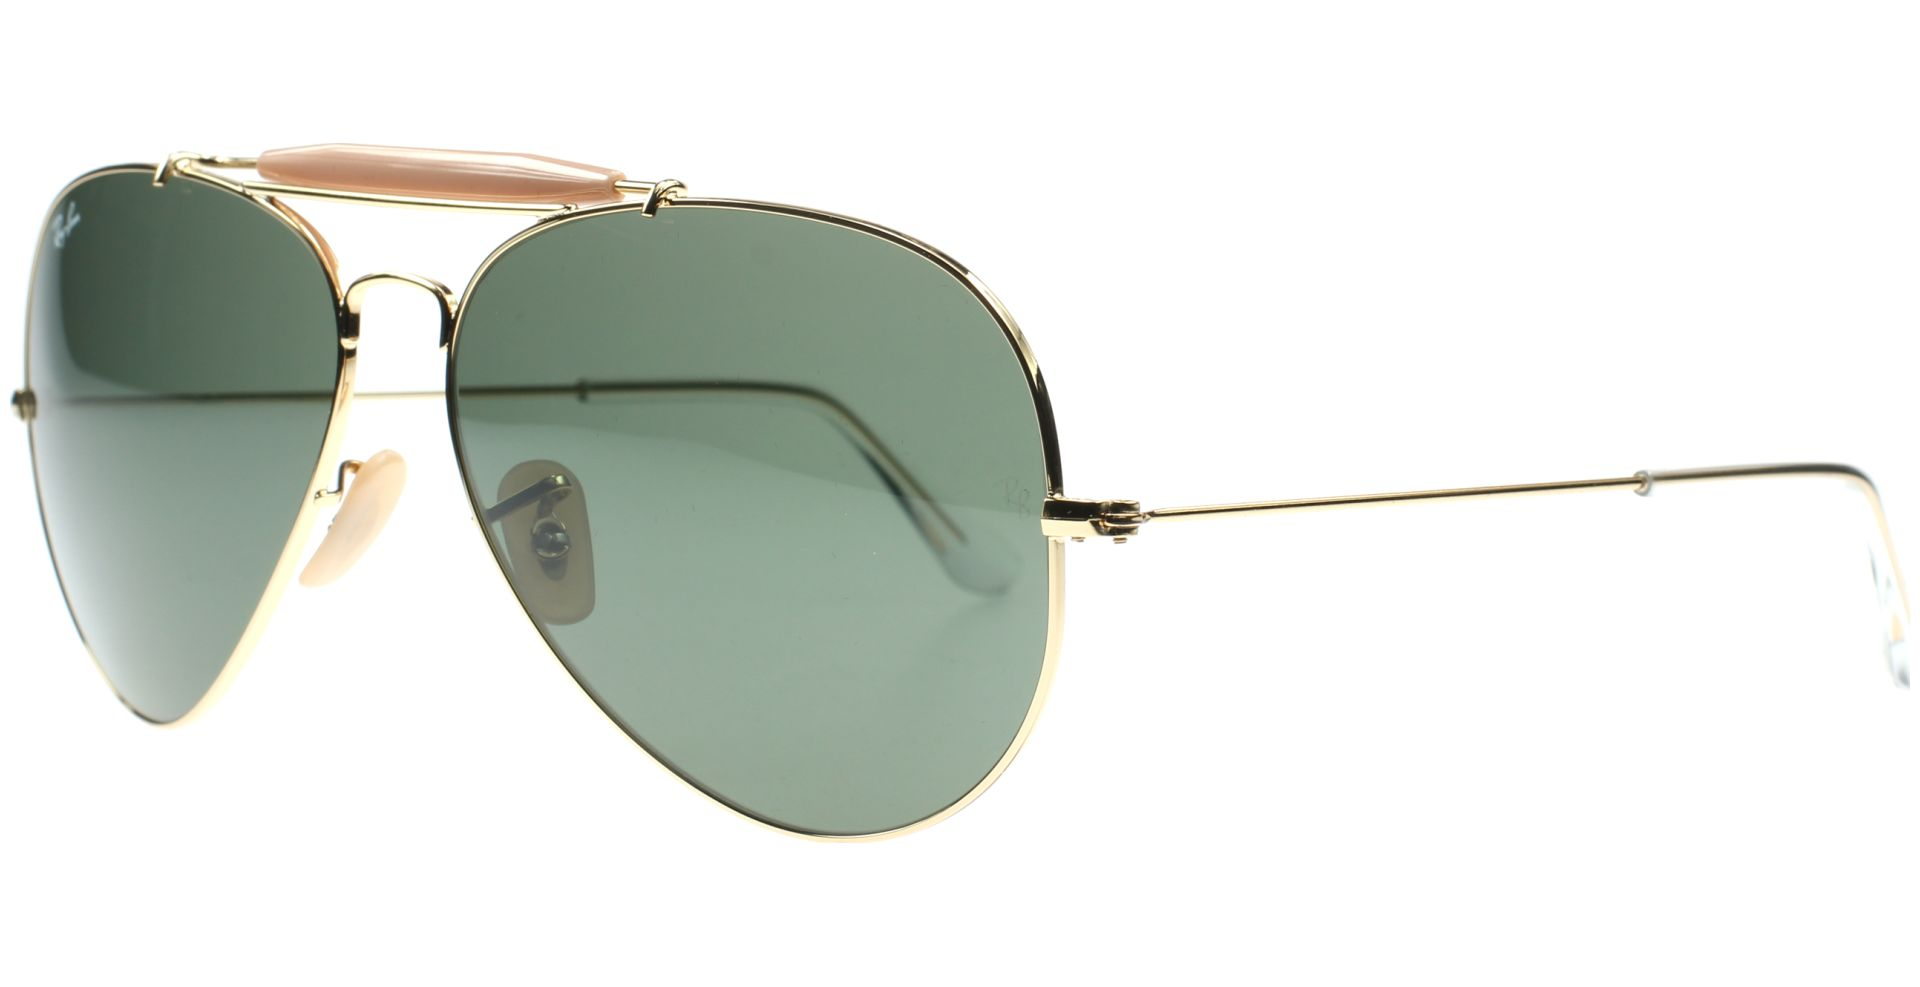 Ray-Ban - Outdoorsman 2 3029 L2112 6214 Gold - von Lensbest